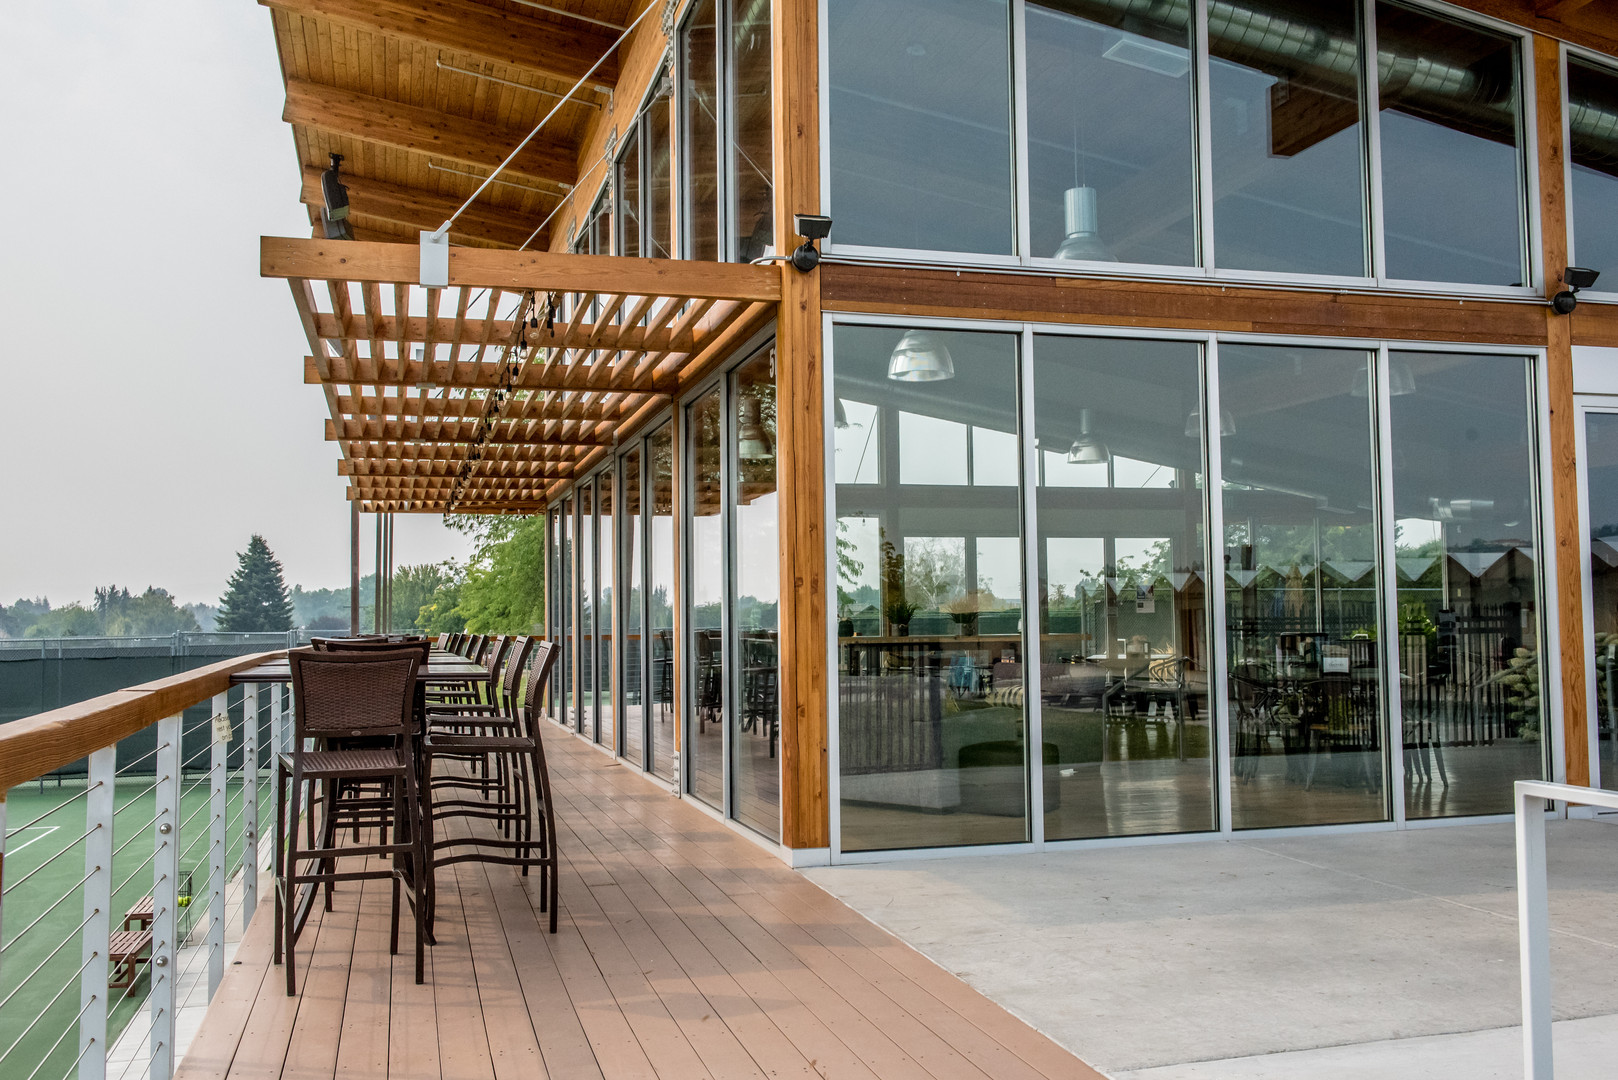 Outdoor Club Deck and Patio.jpg